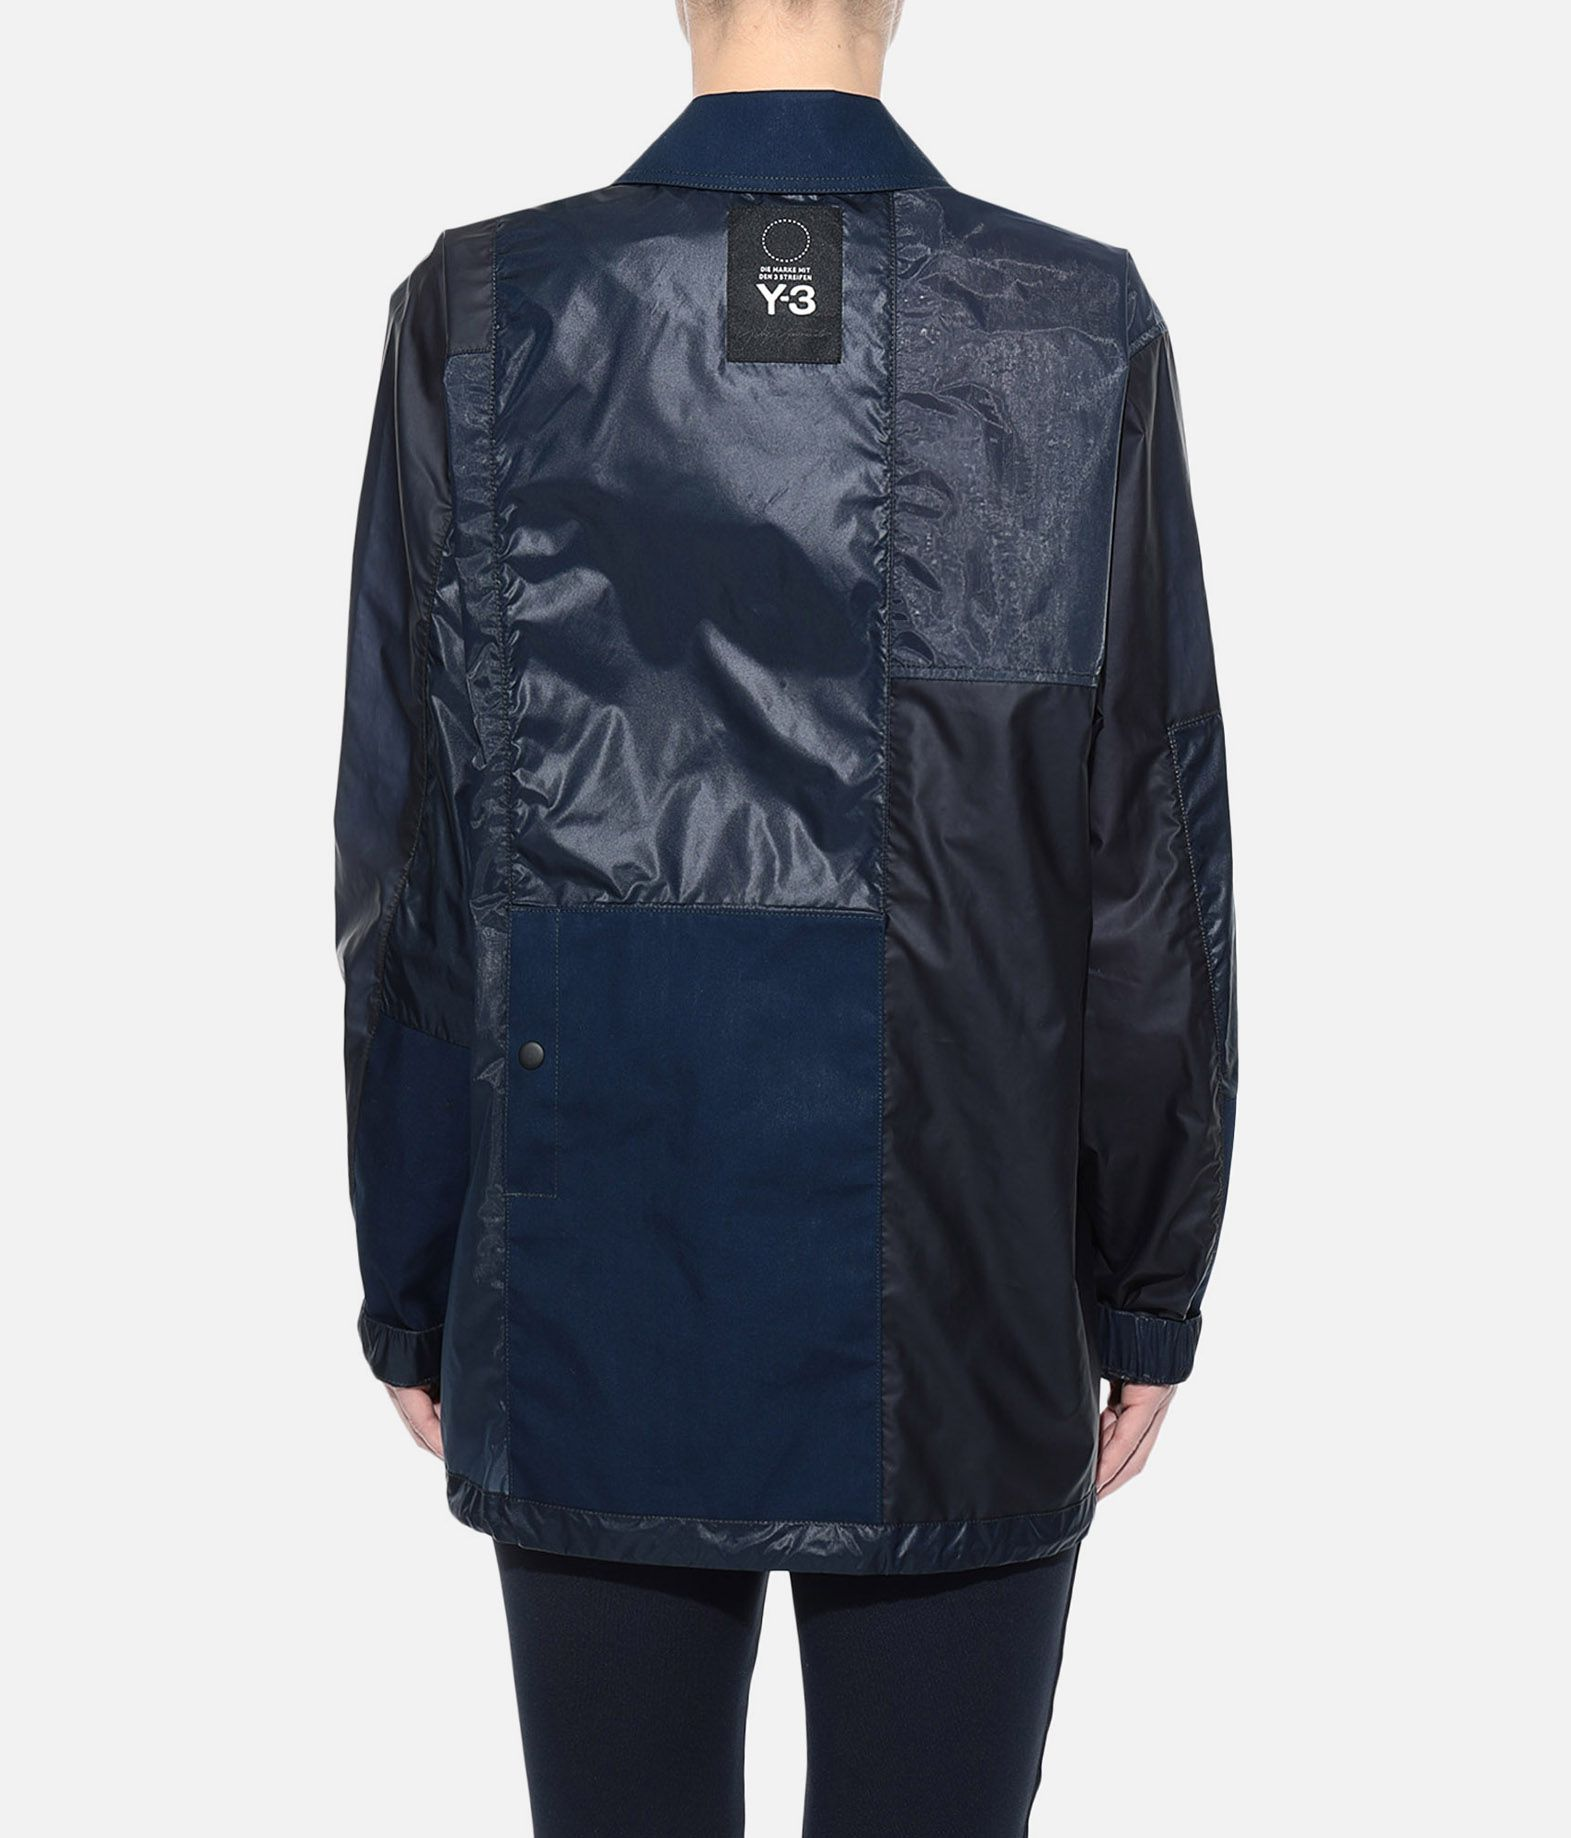 Y-3 Y-3 Patchwork Coach Jacket  Jacket Woman d